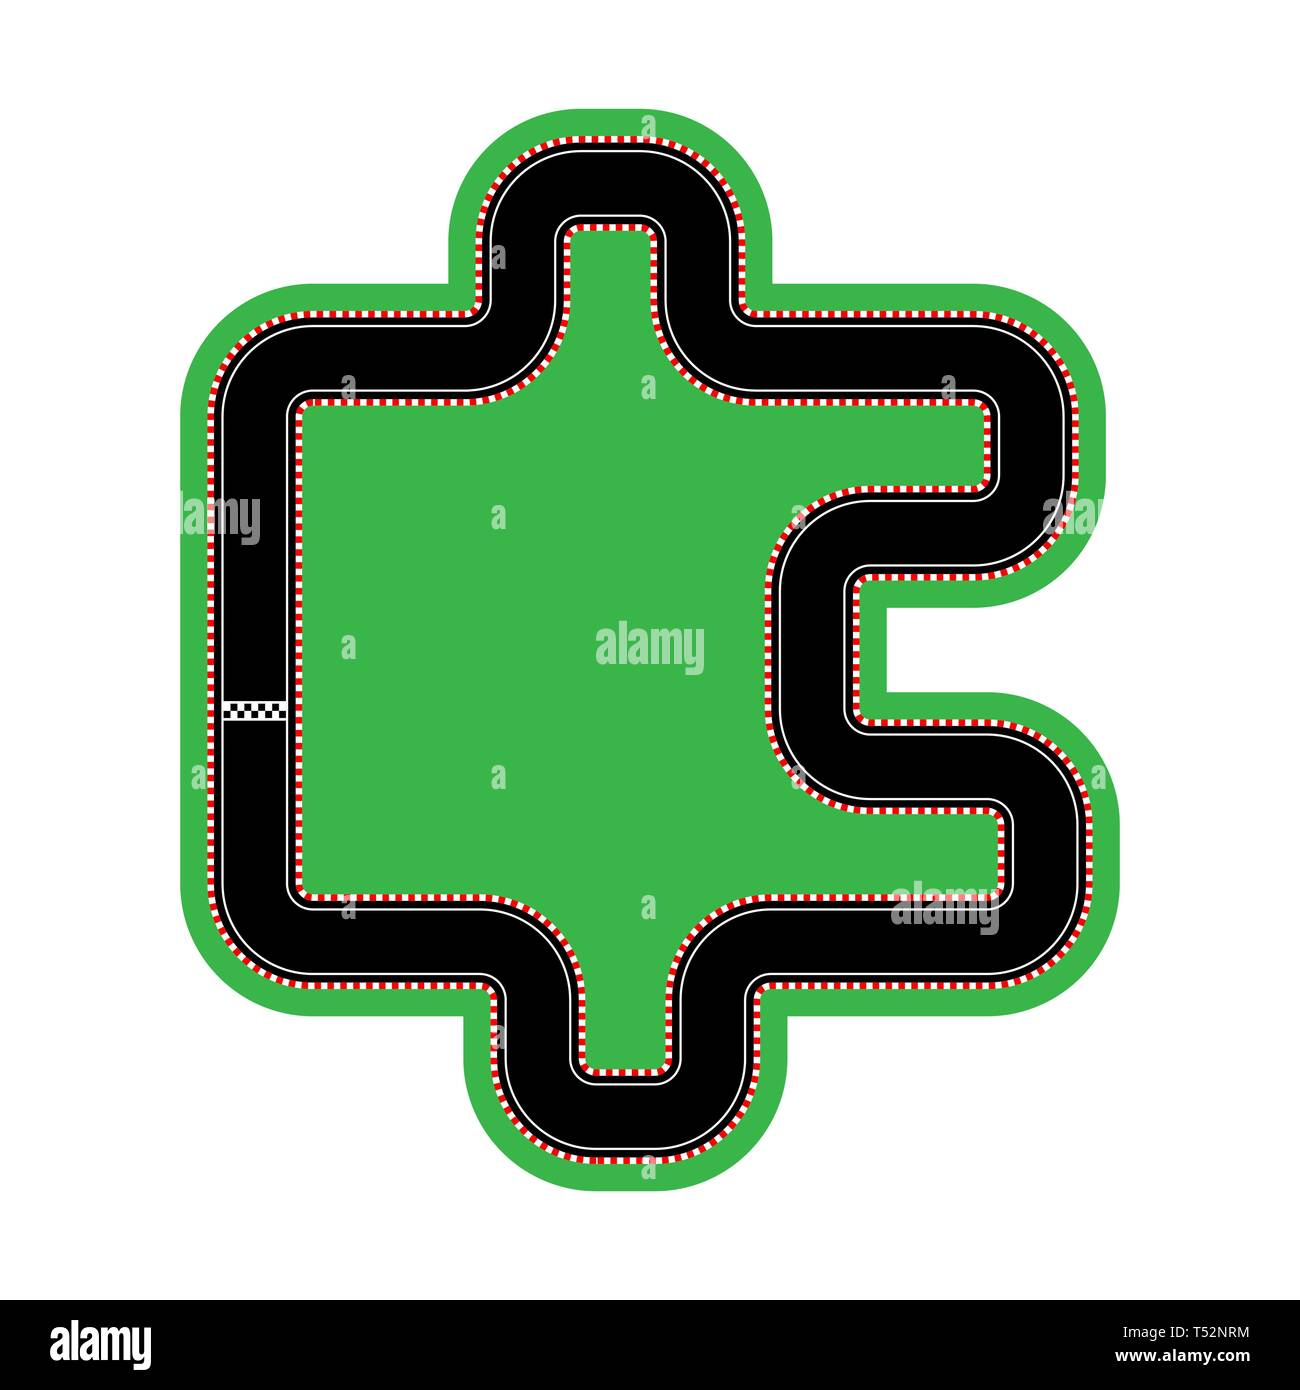 layout of the race tracks and design, flat design - Stock Image